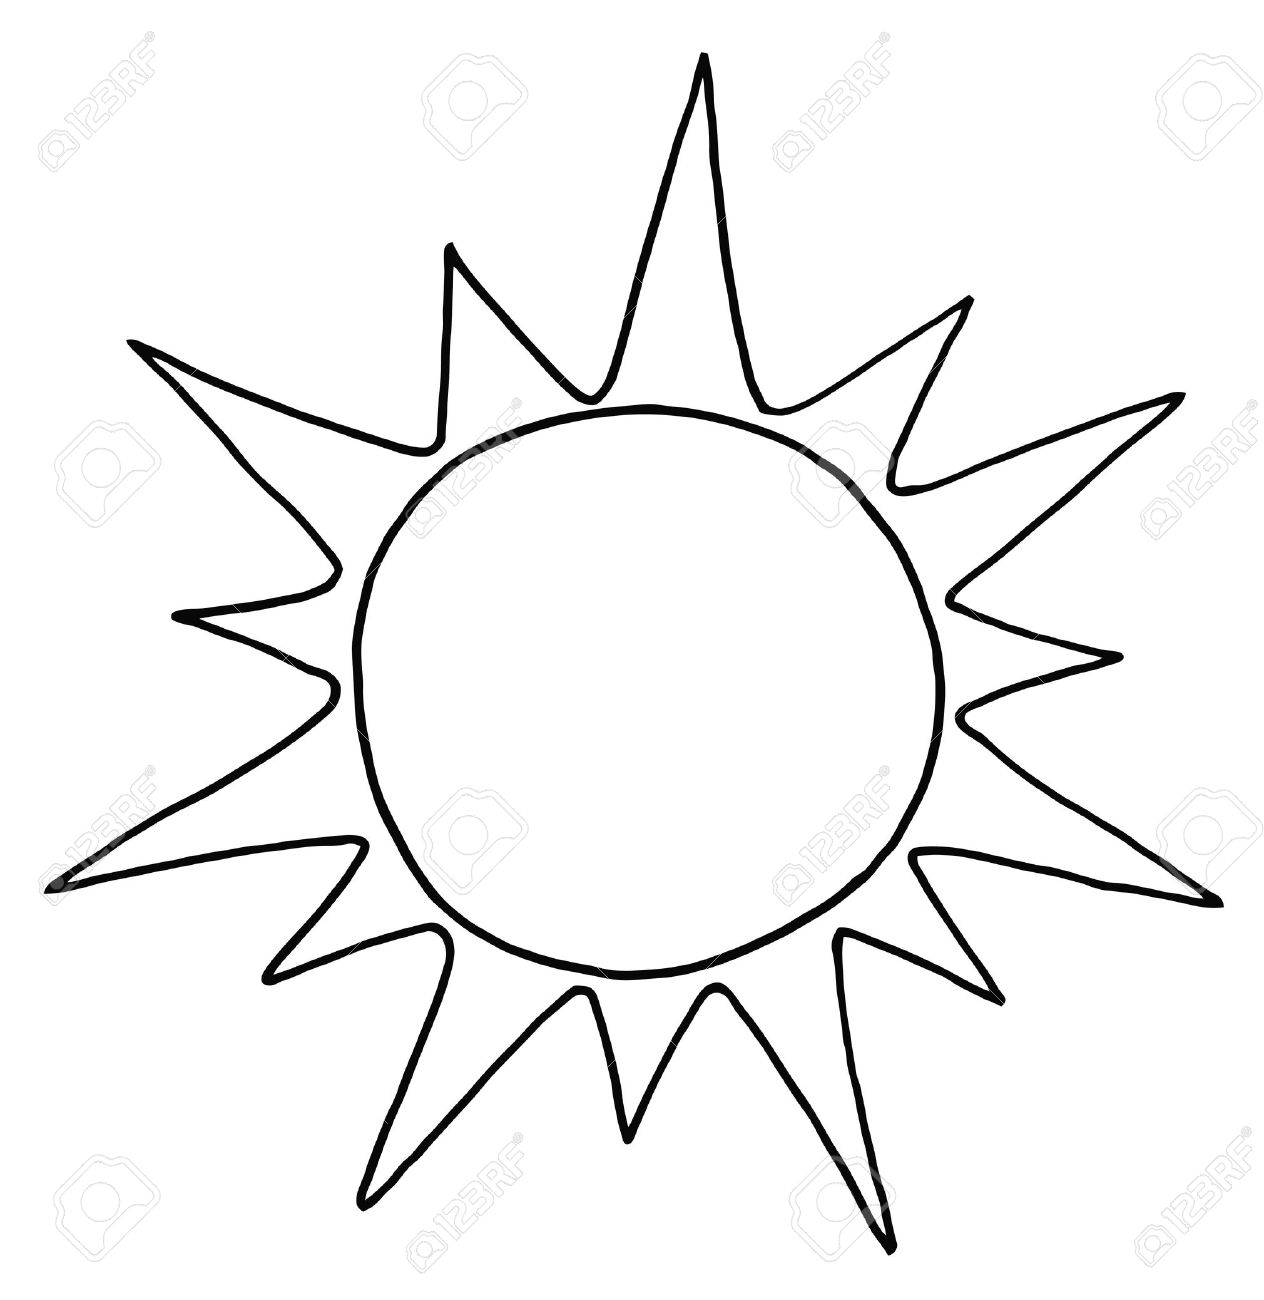 outlined summer sun royalty free cliparts vectors and stock rh 123rf com black and white sun clipart free clipart black and white sunglasses